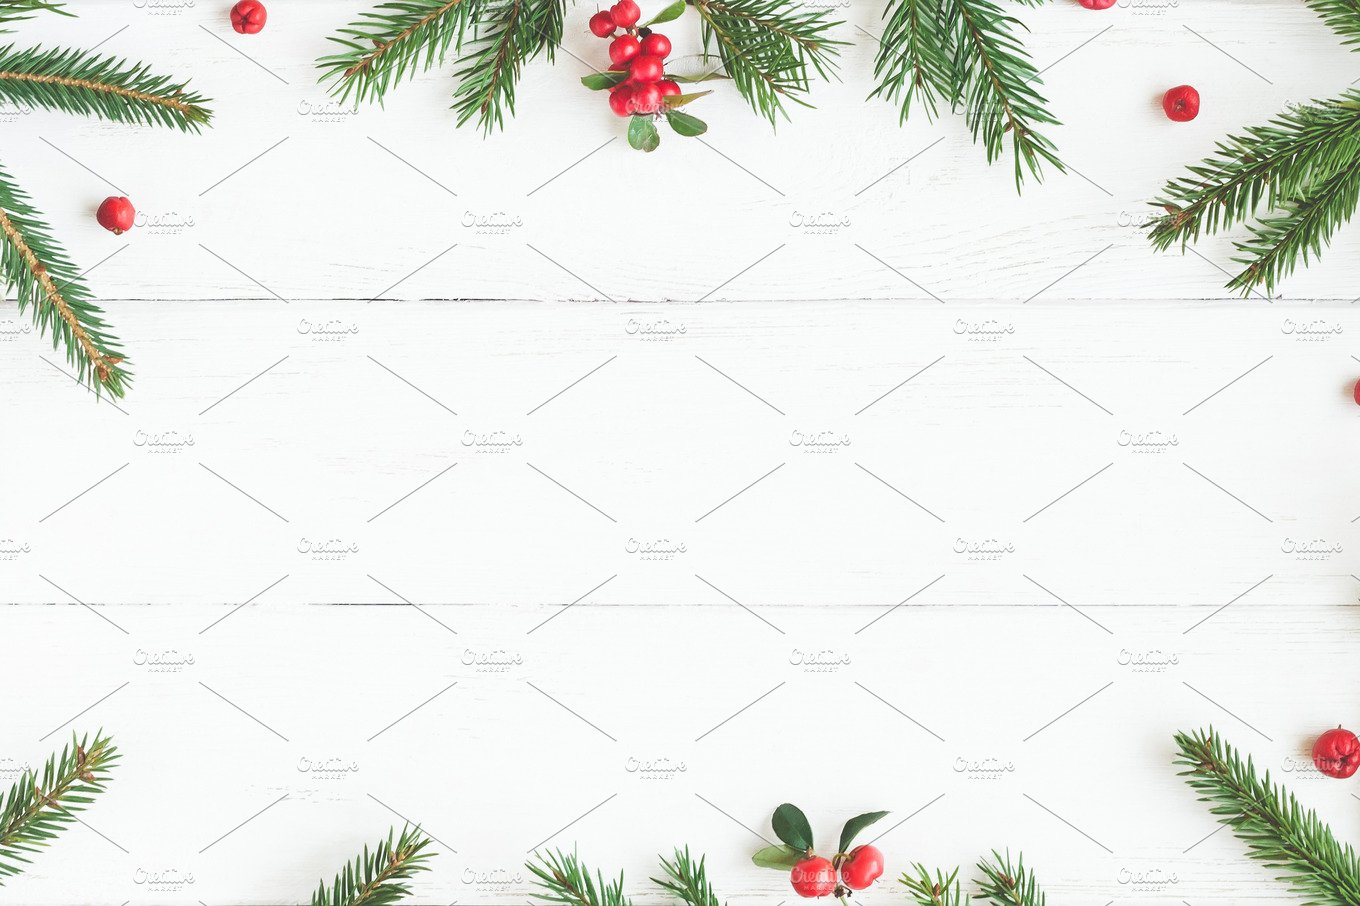 Christmas frame mockup Photos, Graphics, Fonts, Themes, Templates ...